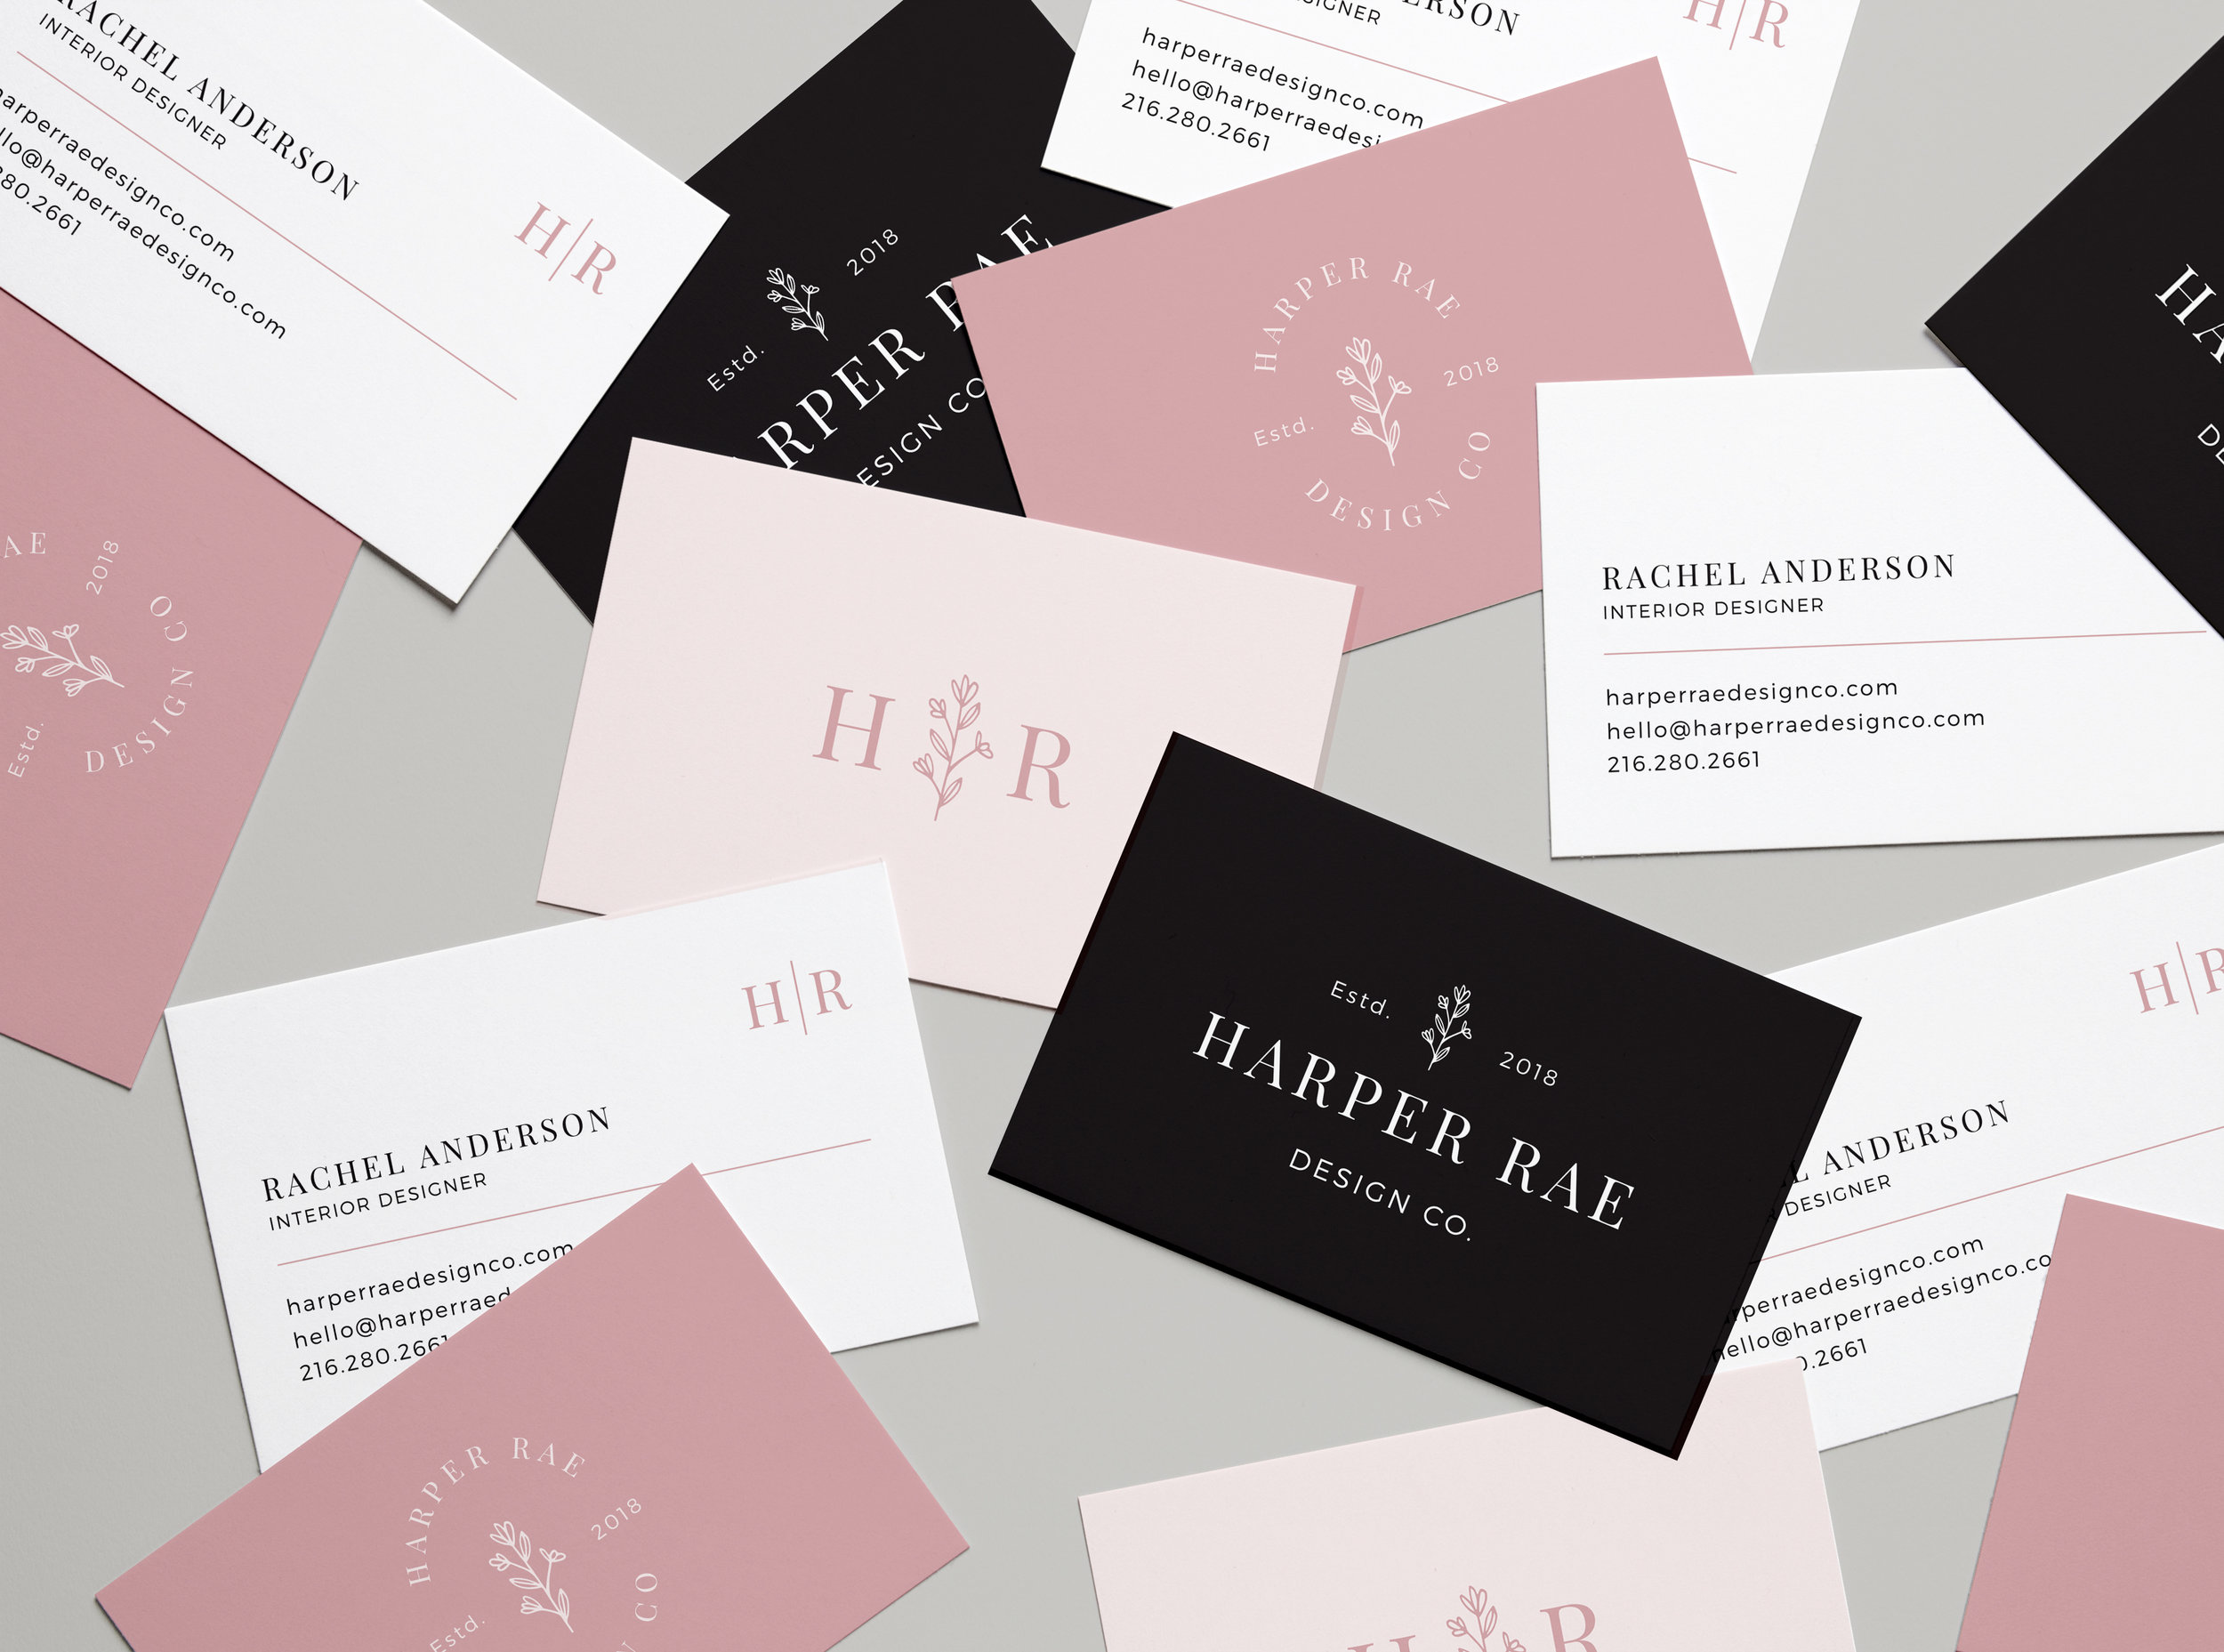 HR-Business-Card-Mockup.jpg